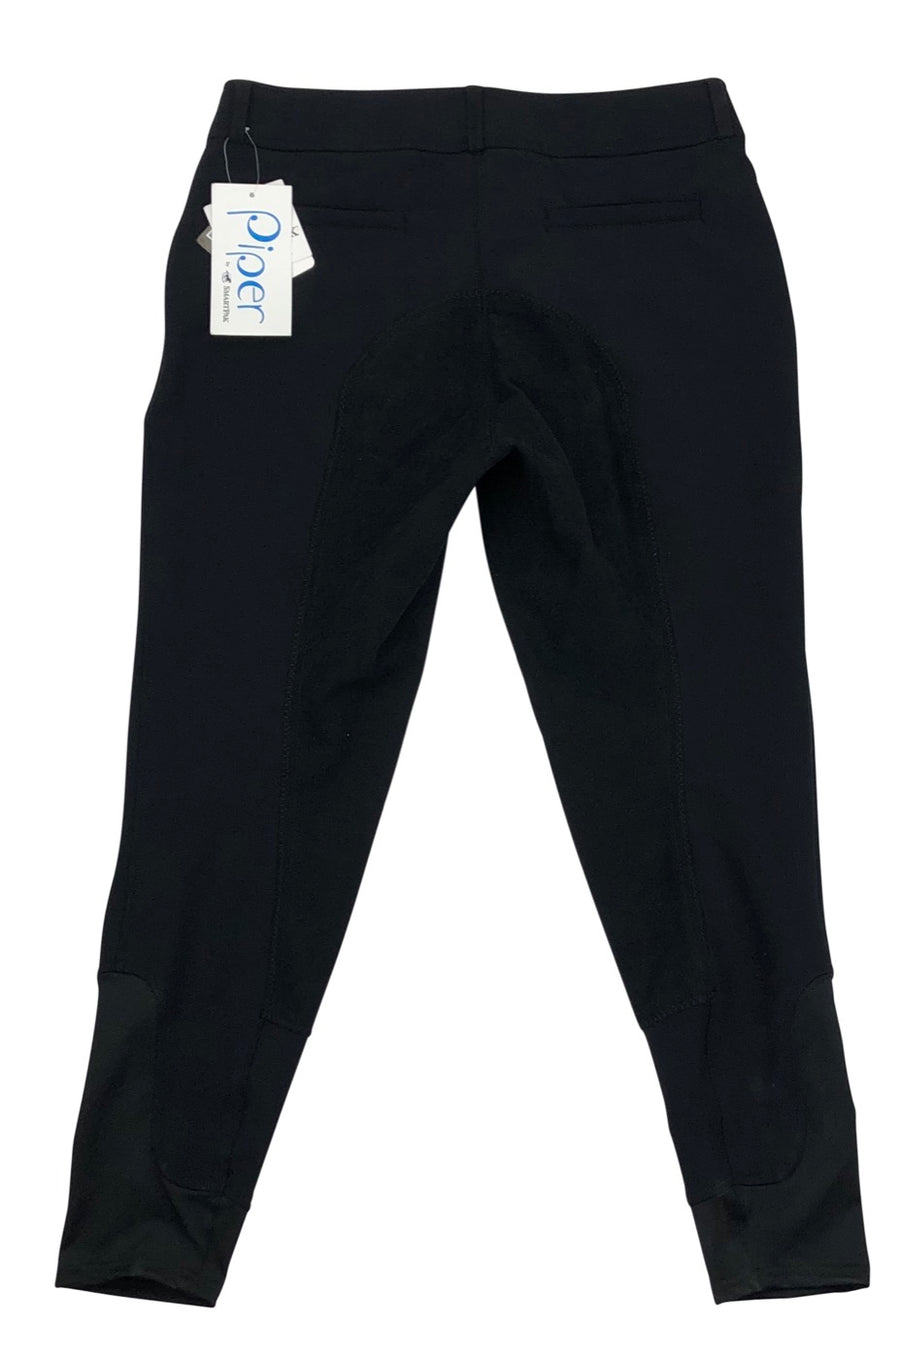 Back view SmartPak Piper Softshell Full Seat Winter Breeches in Black